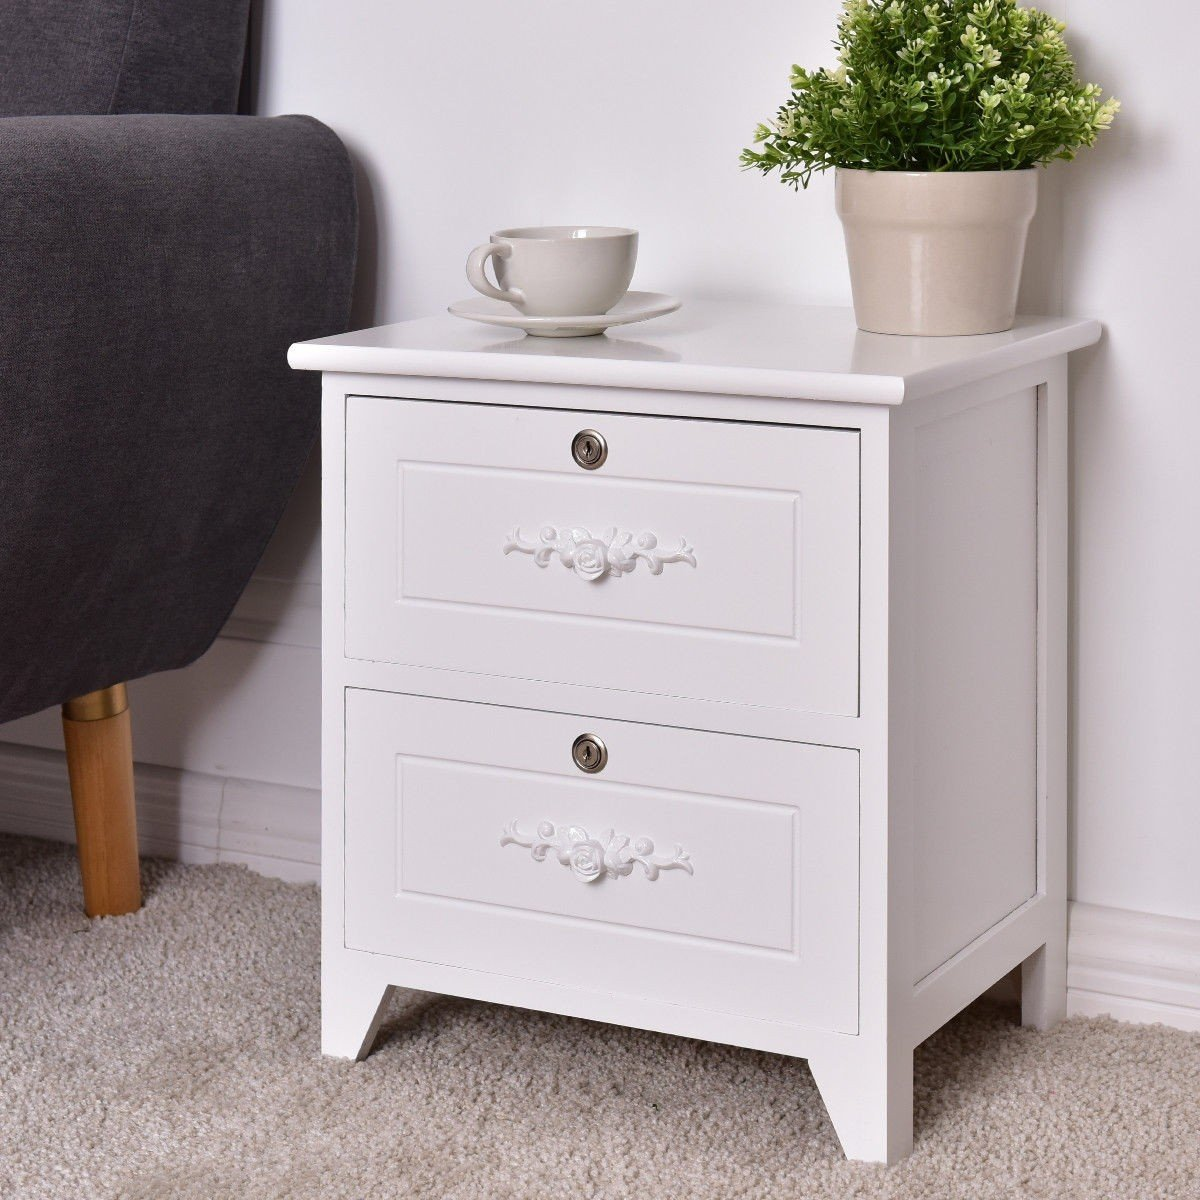 Solid Wood Elegant Storage Nightstand W 2 Locking Drawers Wood